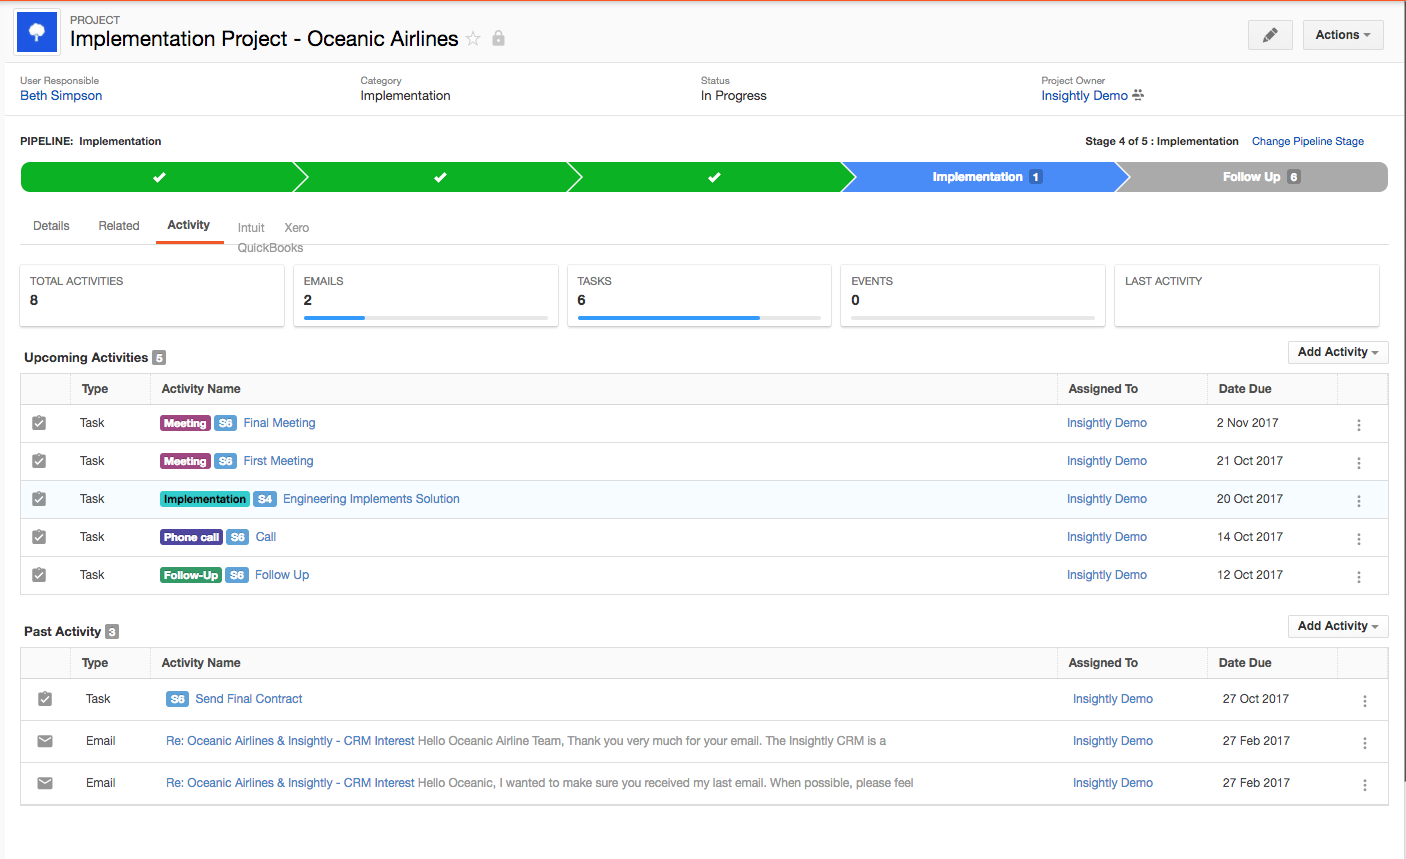 Use pipelines or milestones to track project deliverables and progress